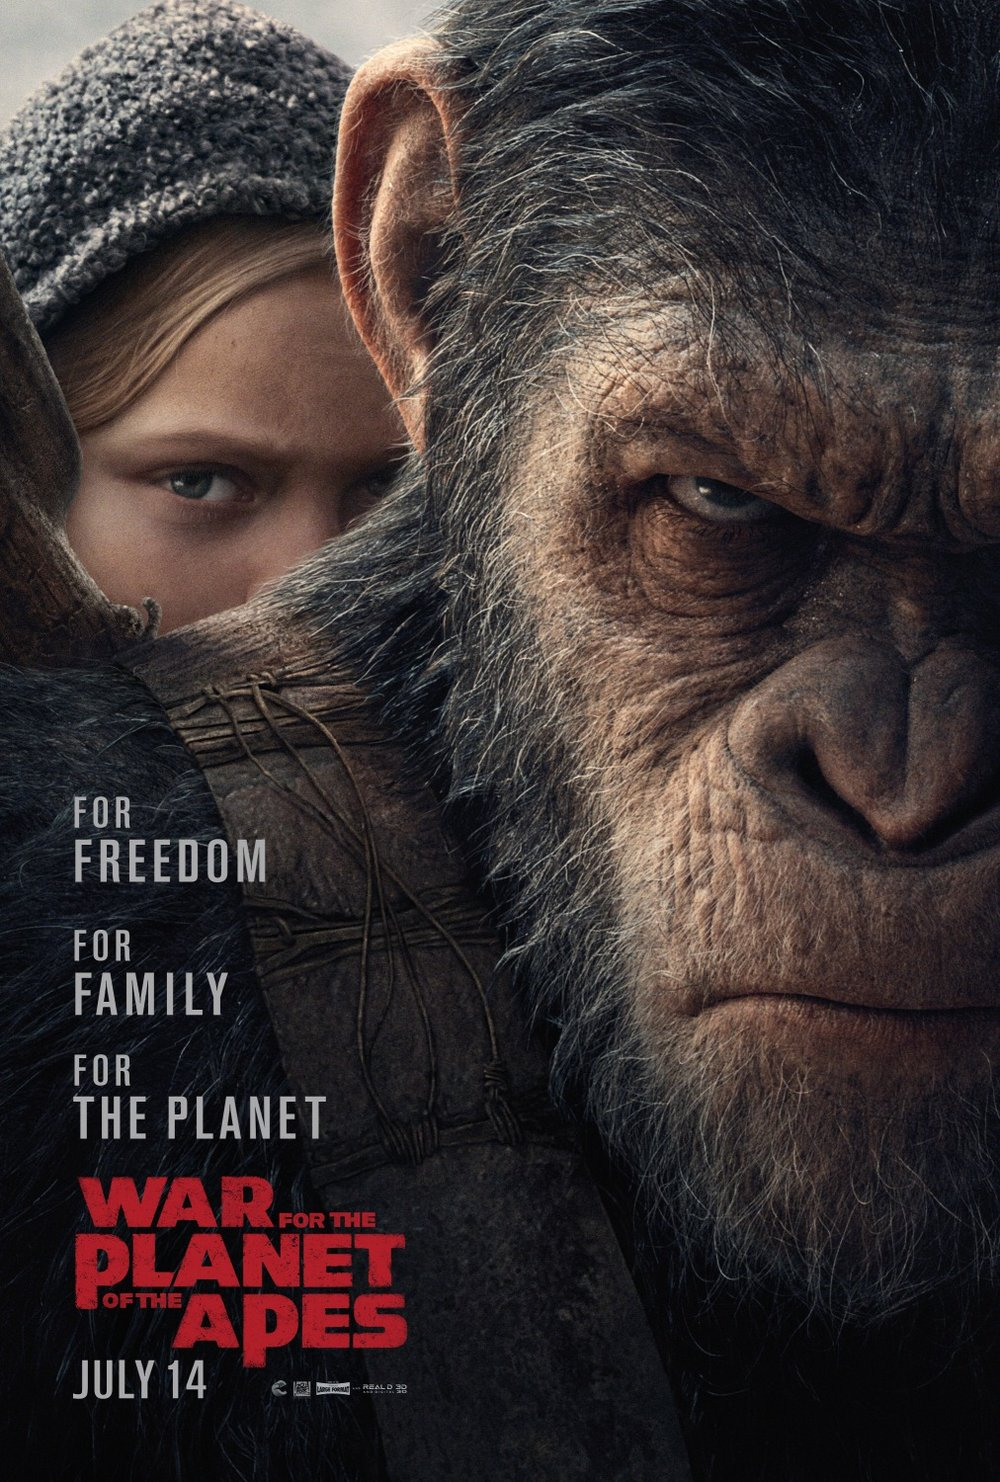 war_for_the_planet_of_the_apes_poster_small.jpeg